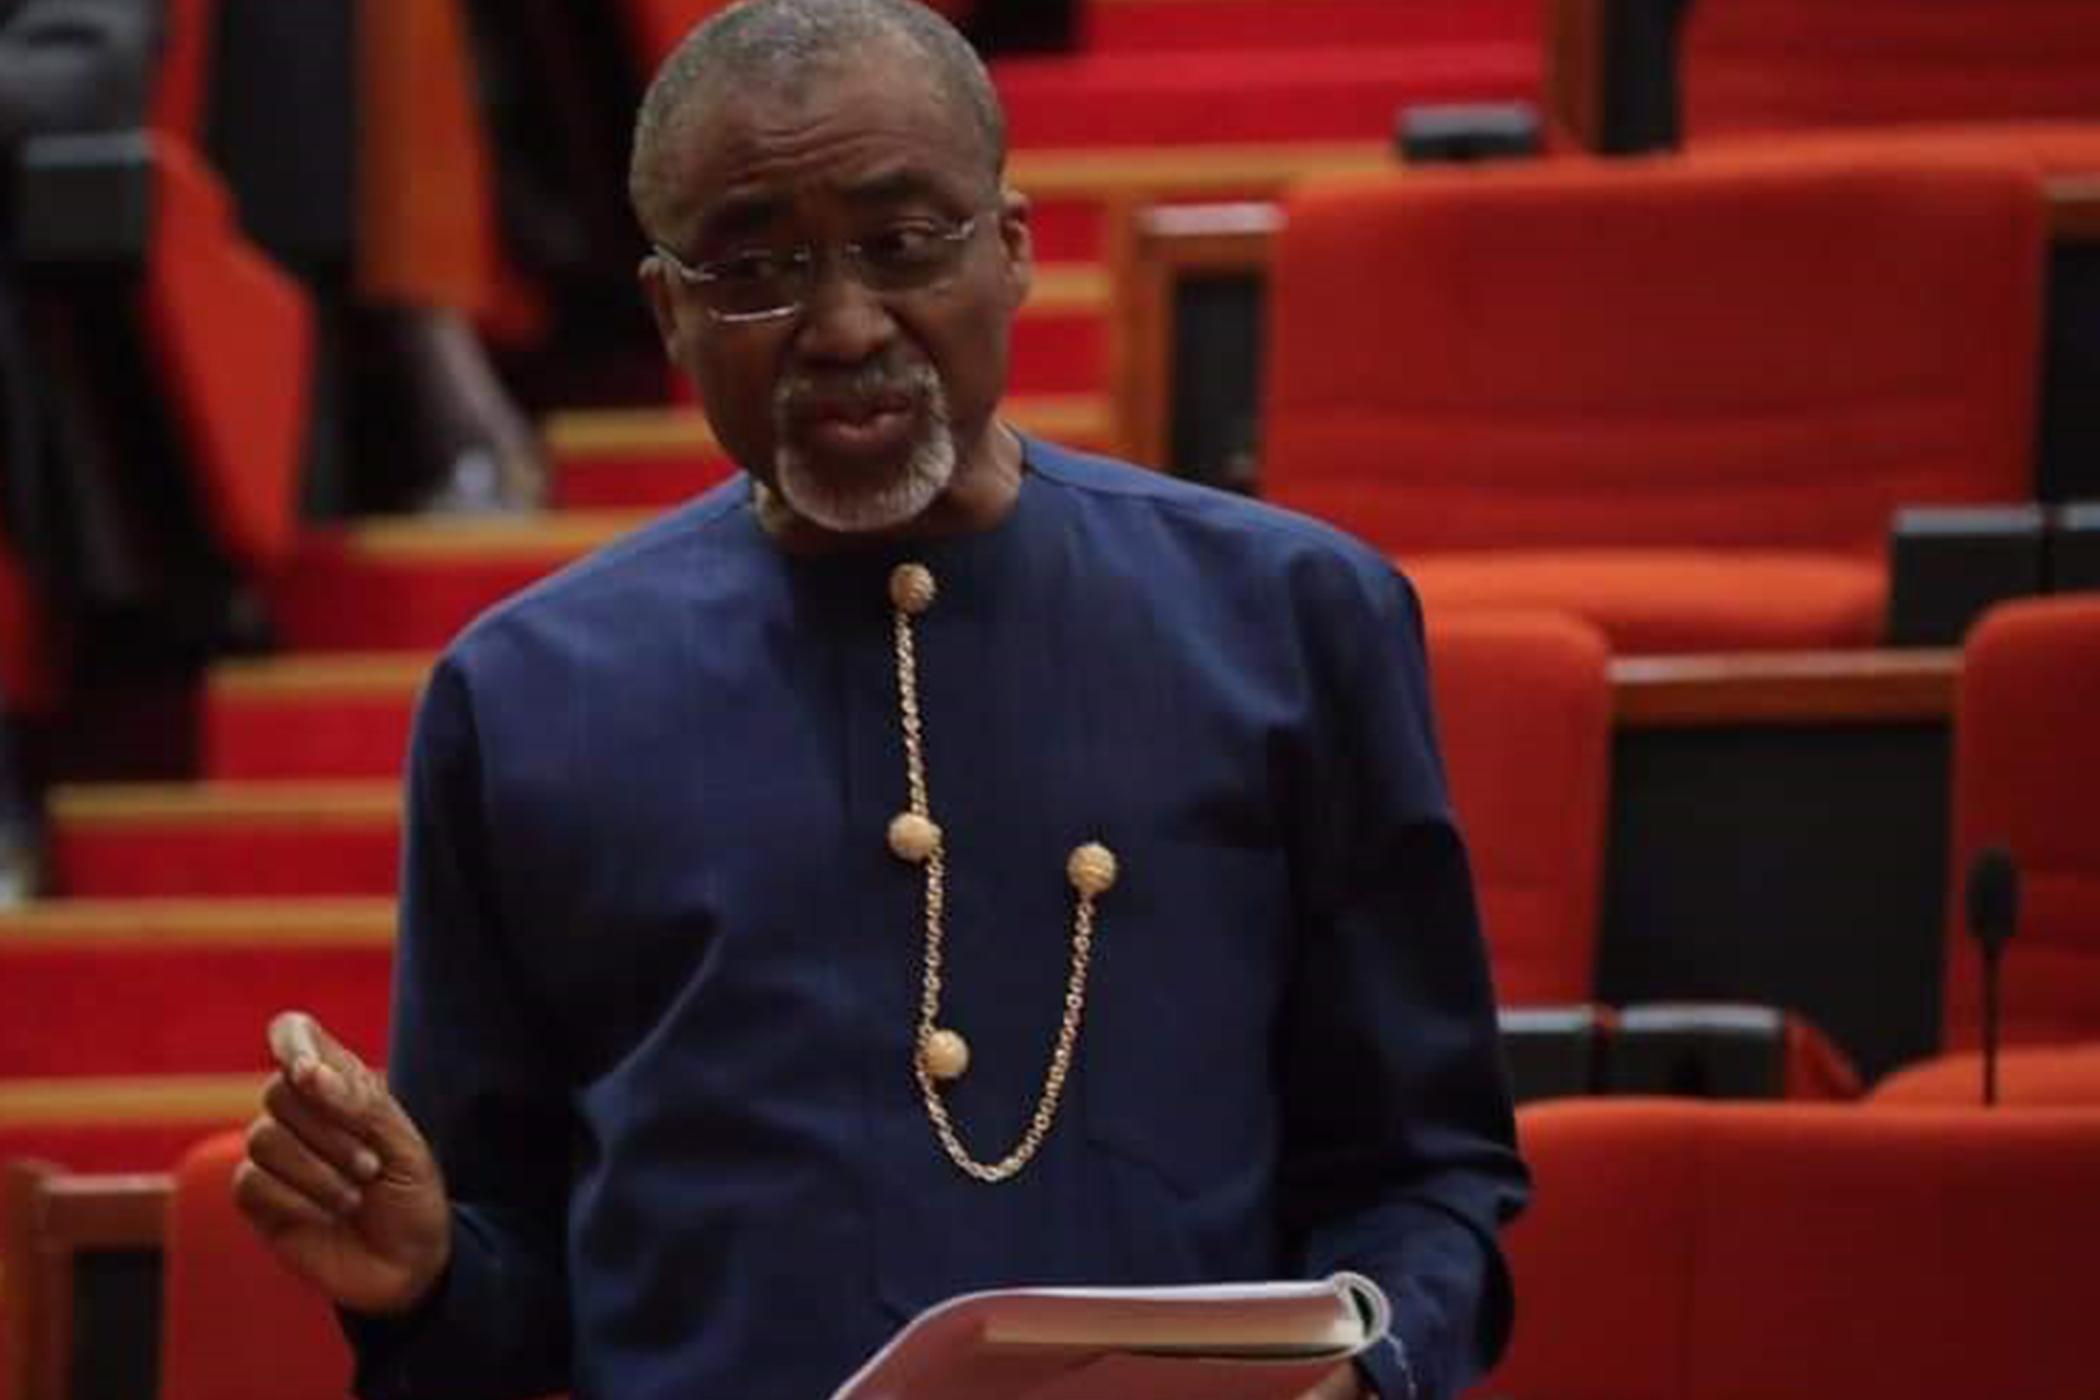 The only person from South-East in Aso Villa is a photographer - Abaribe